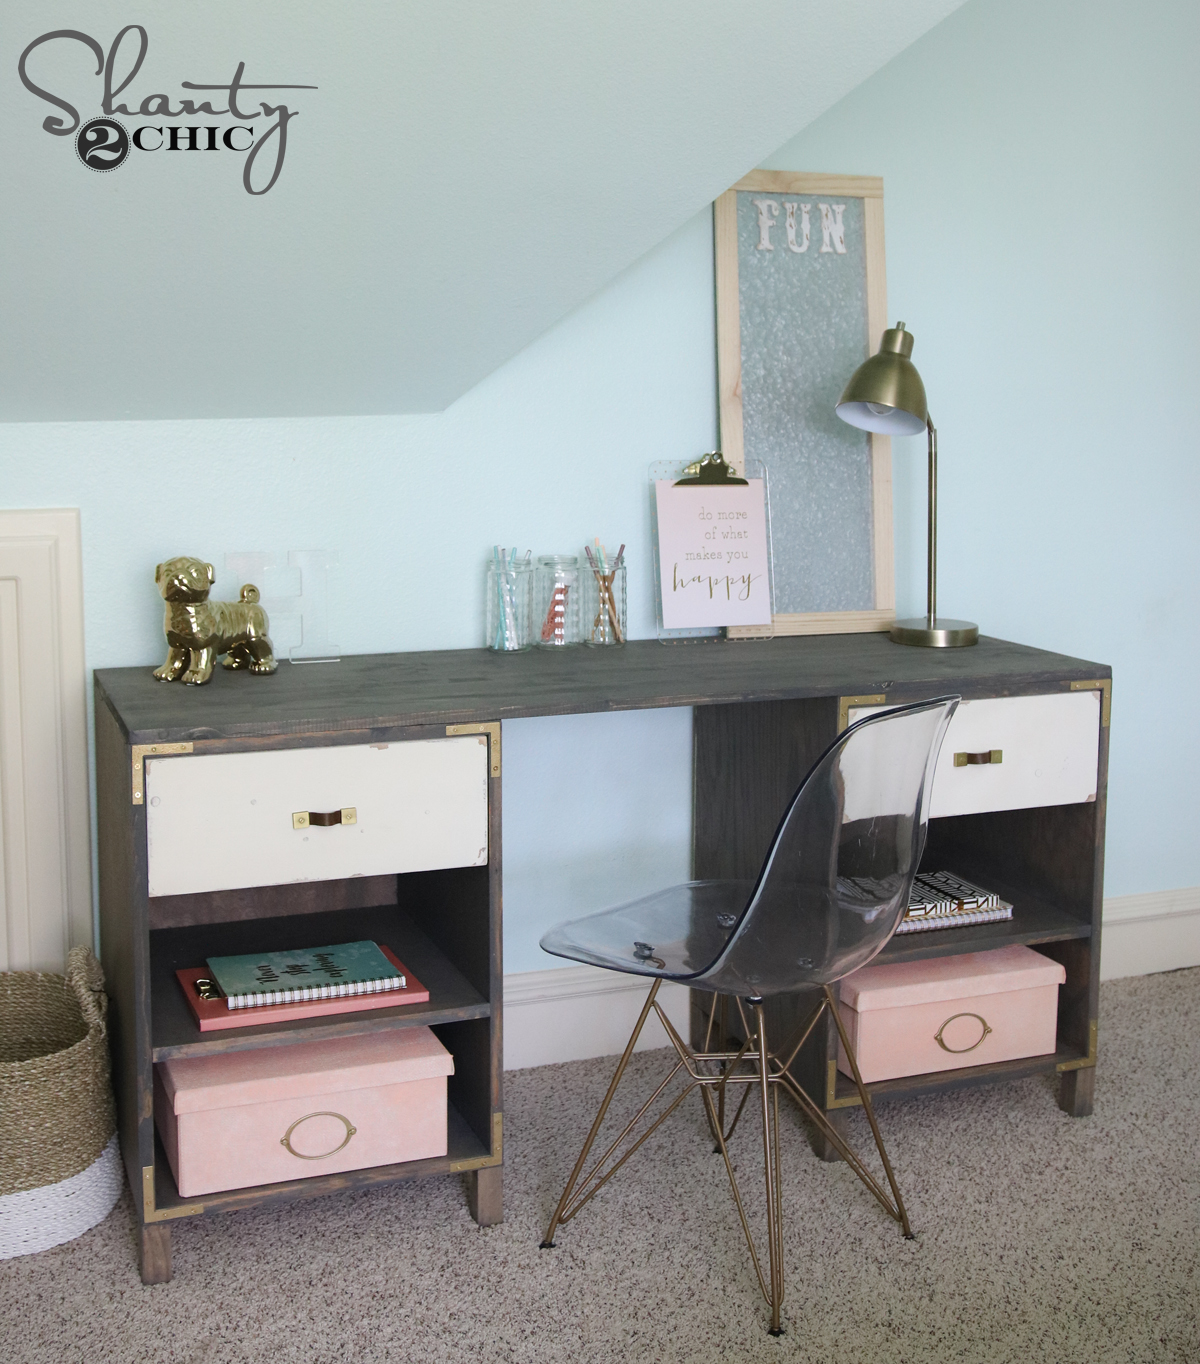 Cubby Storage Desk DIY